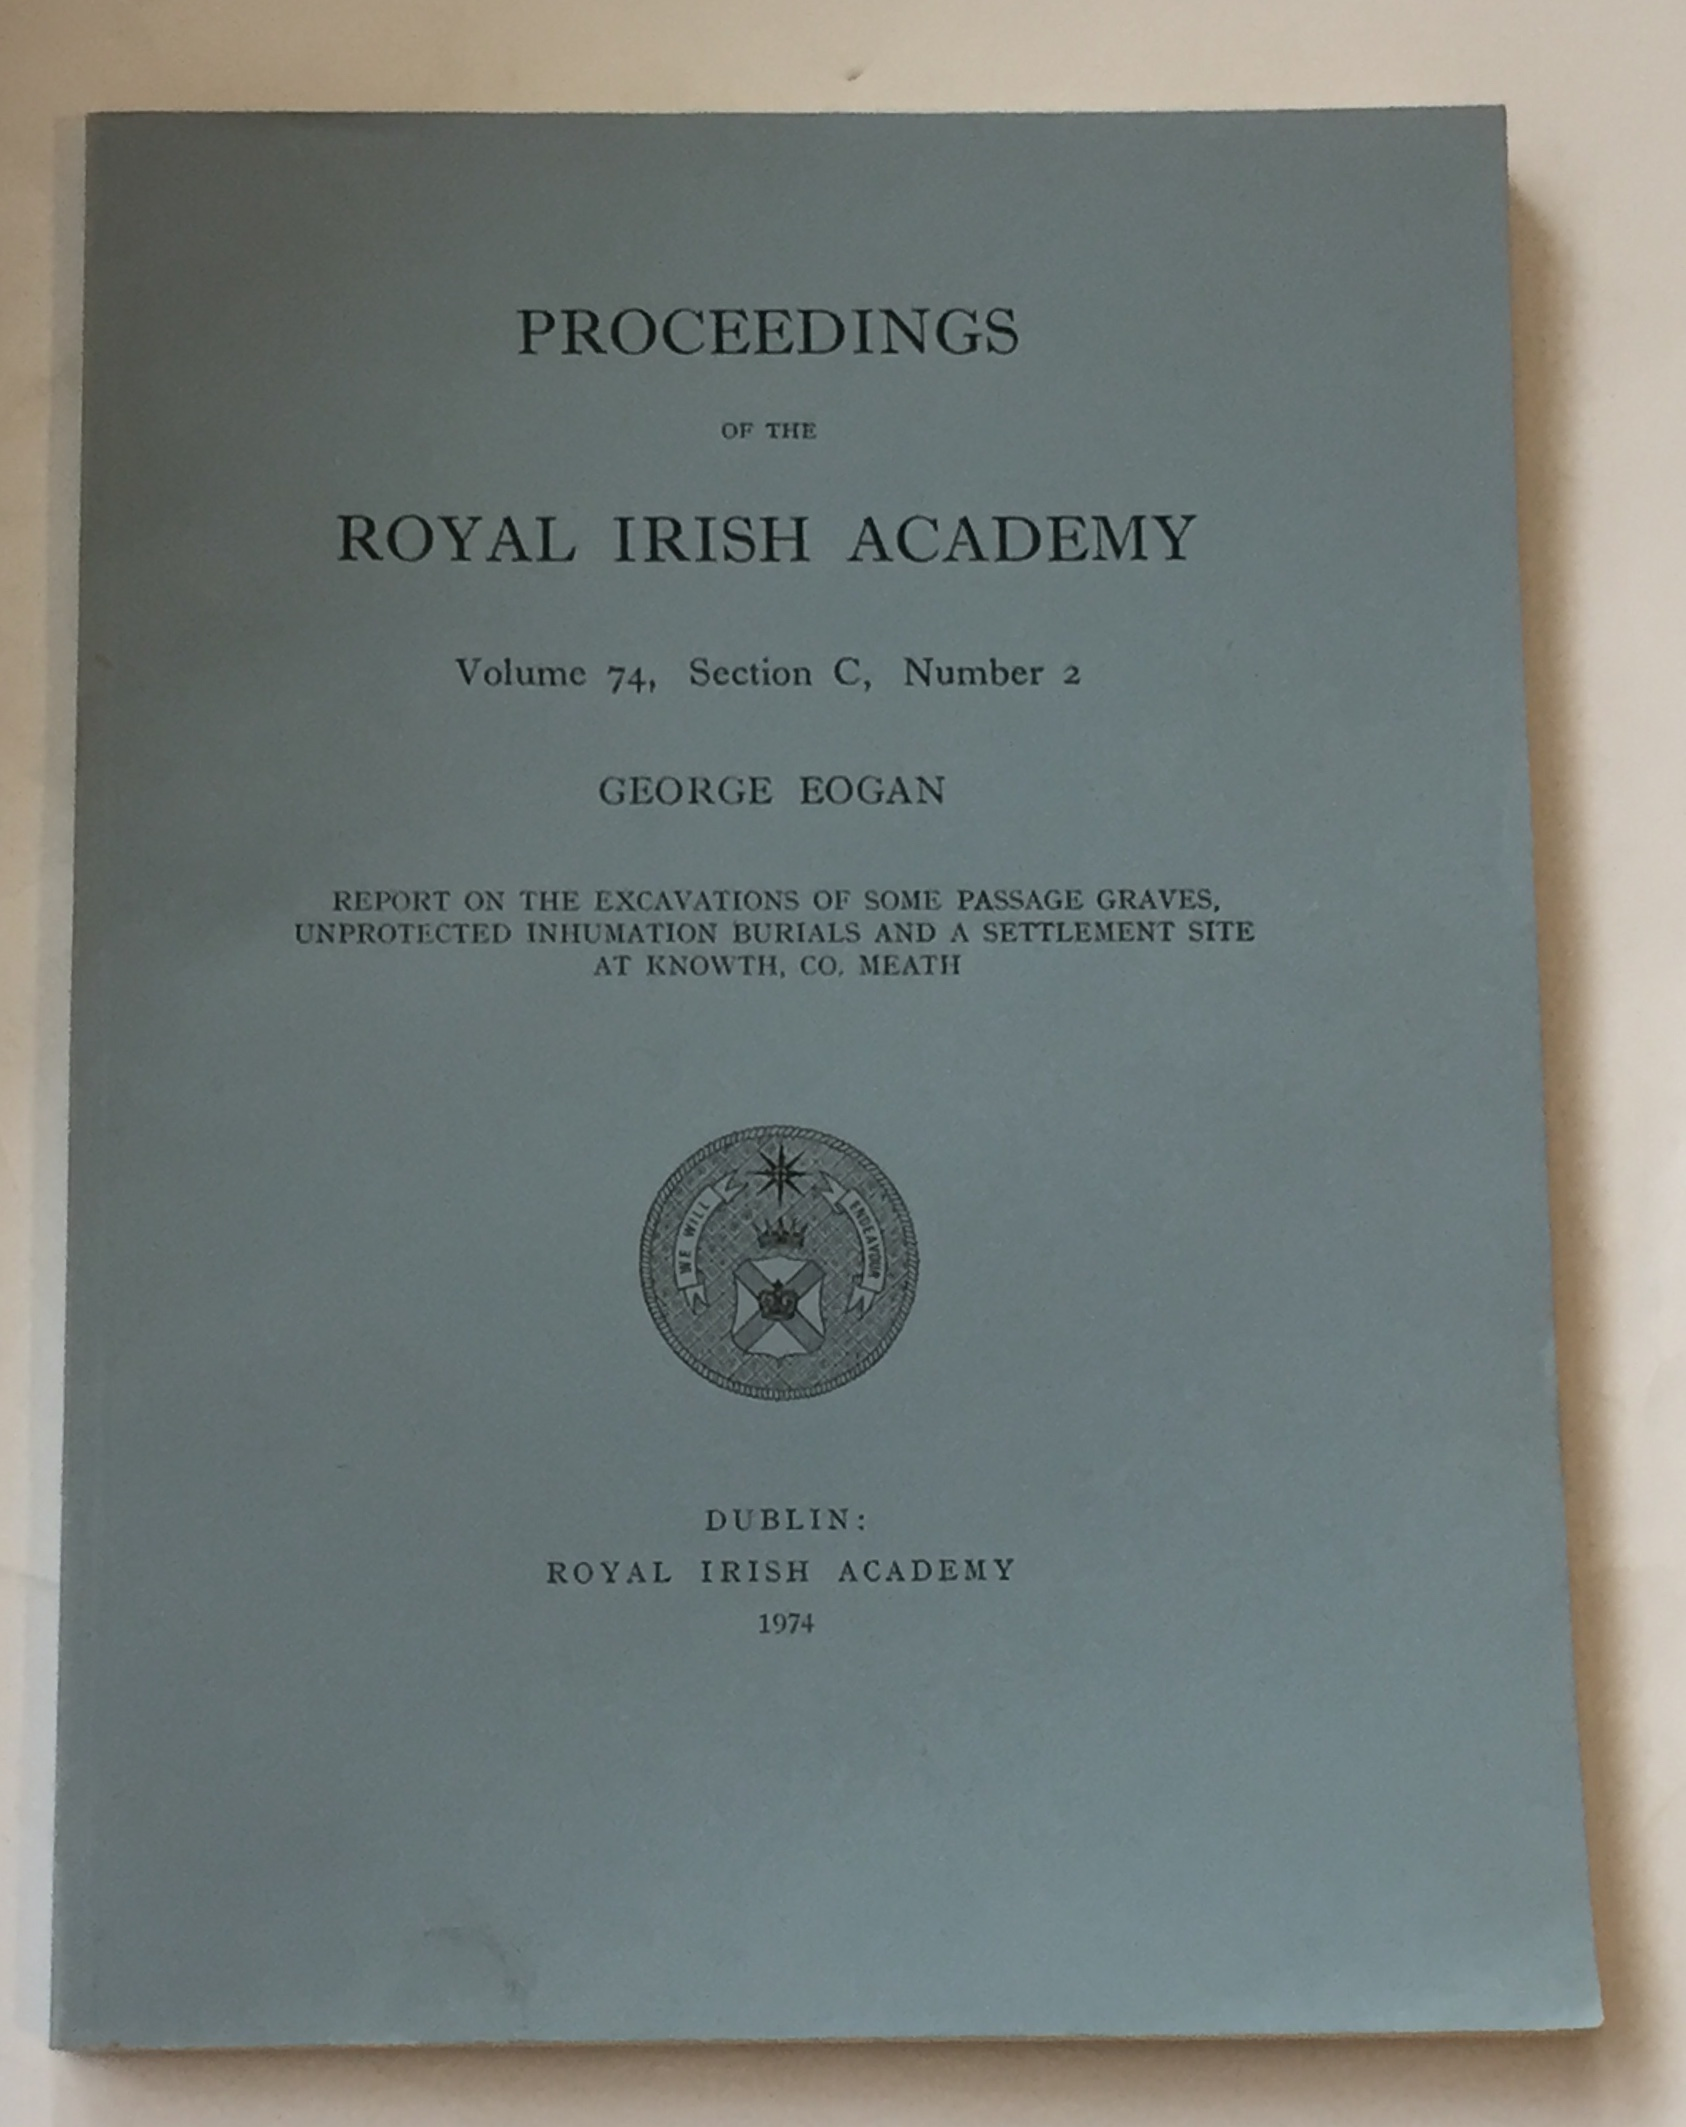 Image for Report on the Excavations of some Passage Graves, Unprotected Inhumation Burials and a Settlement Site at Knowth, Co. Meath :Proceedings of the Royal Irish Academy Volume 74. Section C. No. 2